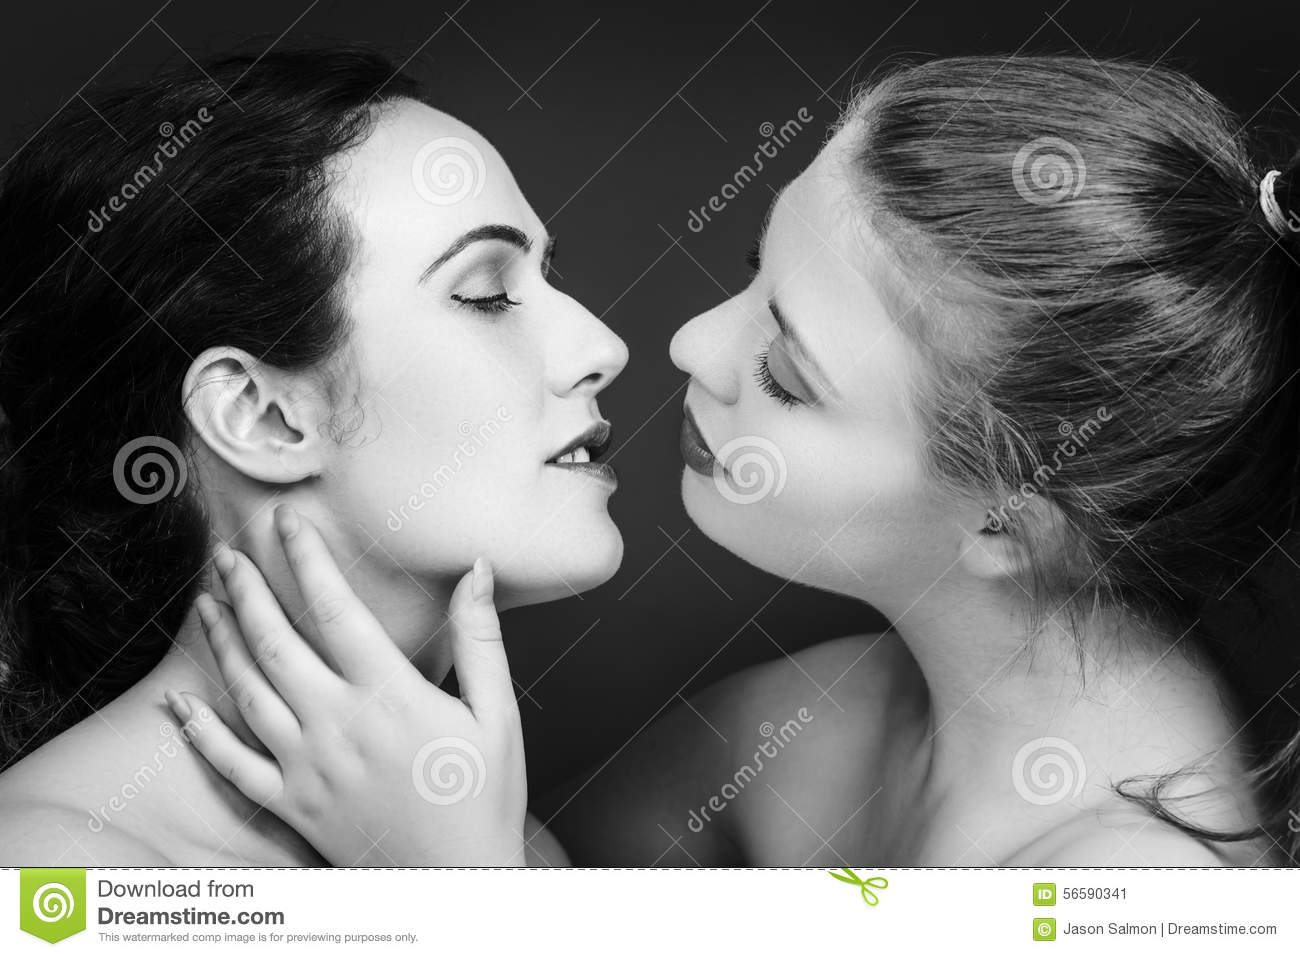 Congratulate, erotic kiss images that